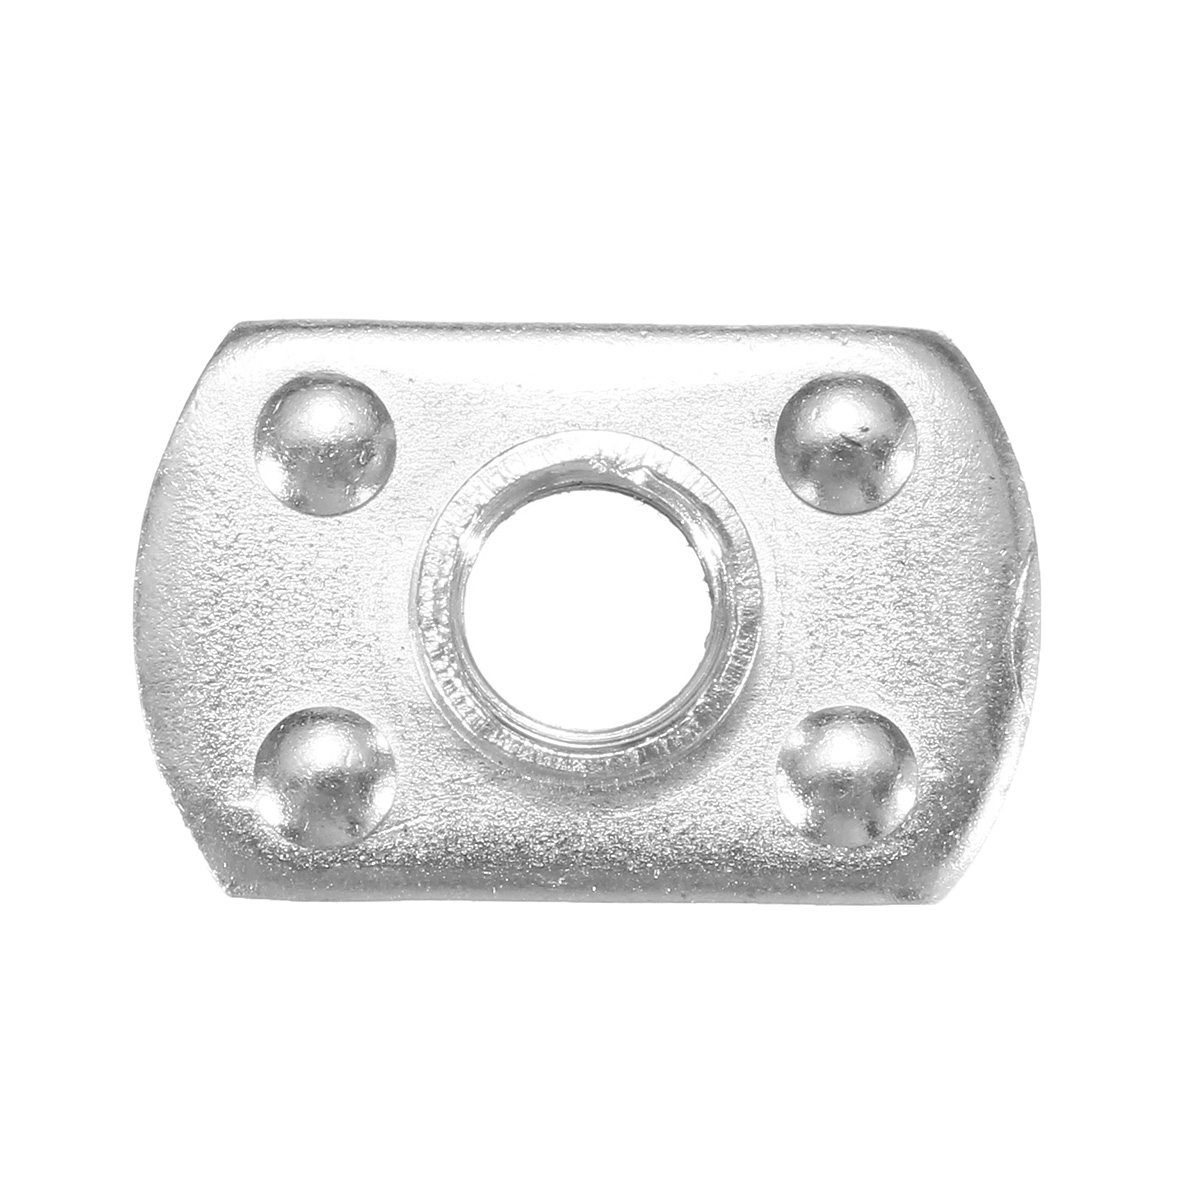 hight resolution of 24x hard top fastener thumb screw nut plate washer fit for jeep wrangler yj jk in nuts bolts from automobiles motorcycles on aliexpress com alibaba